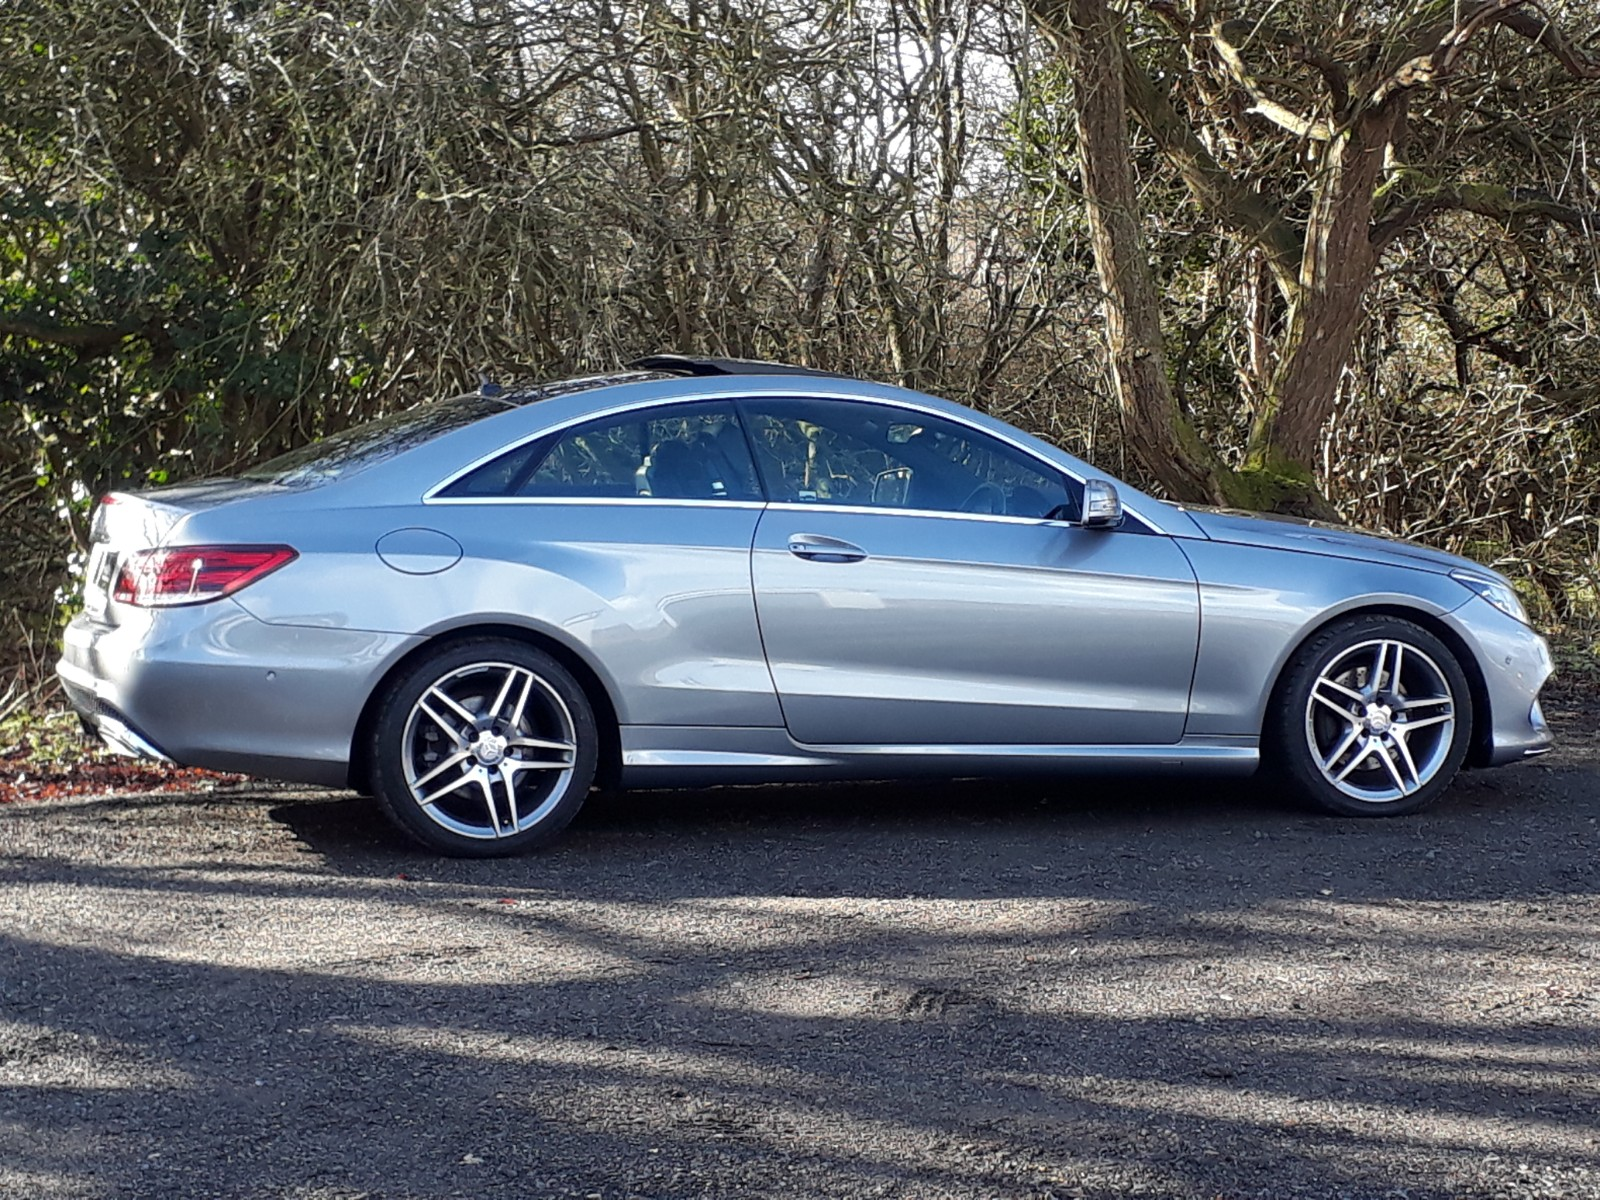 Mercedes E350 CDi Coupe